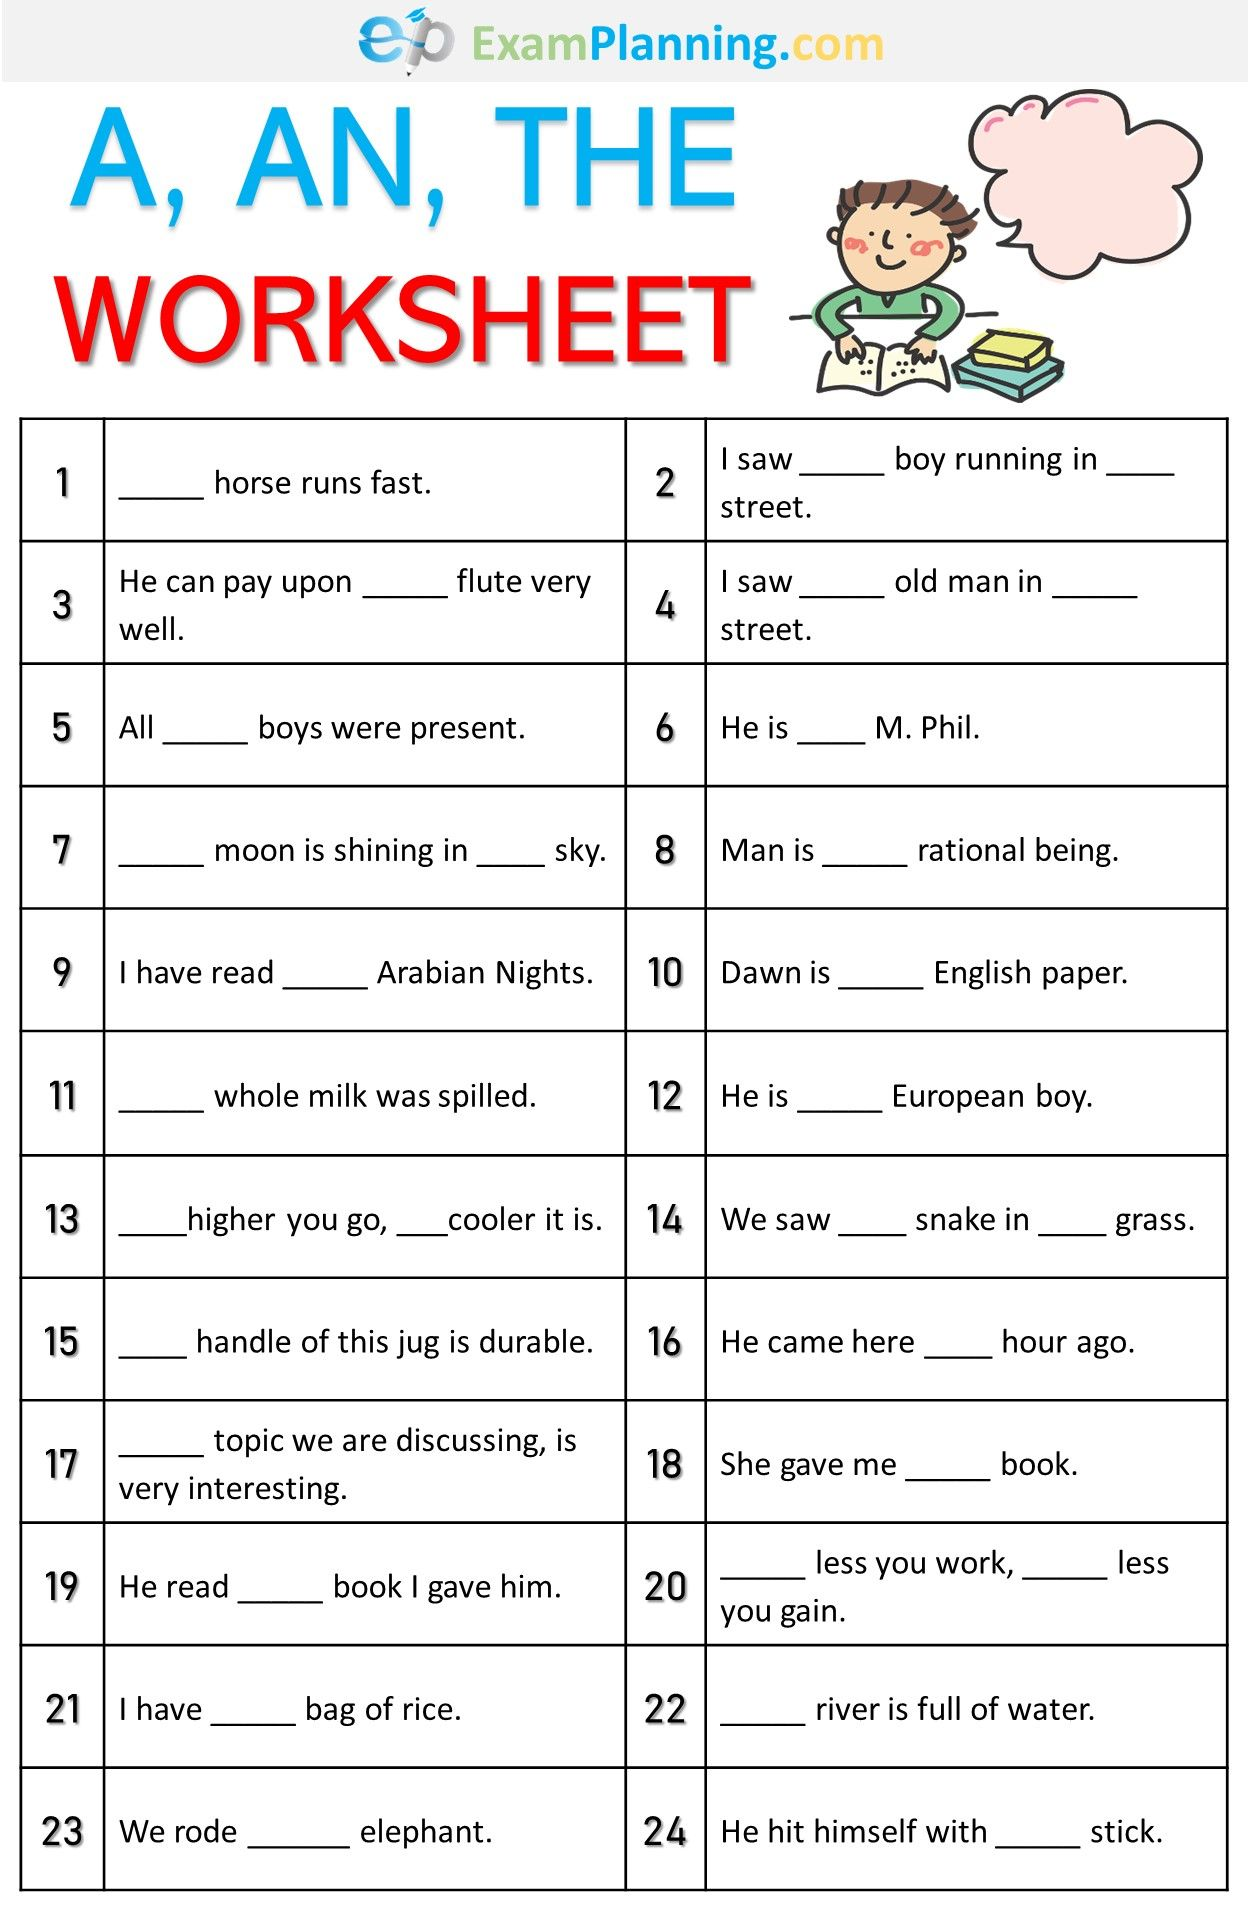 A An The Worksheet With Answers Examplanning English Grammar For Kids English Lessons For Kids English Grammar Exercises